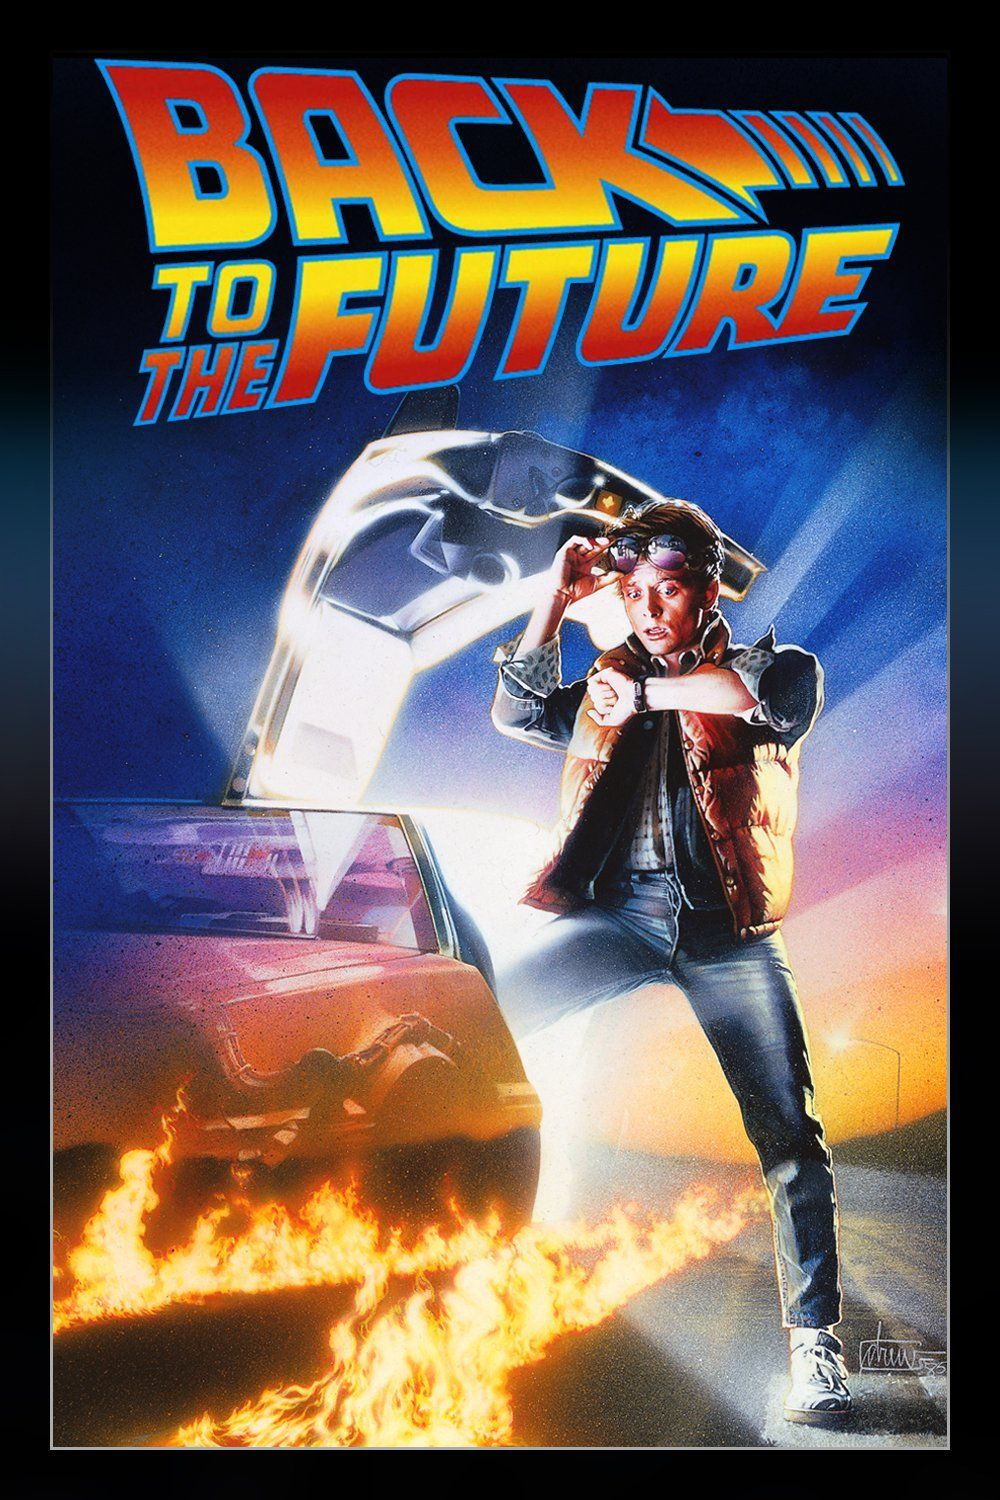 Marty McFly, a 17-year-old high school student, is